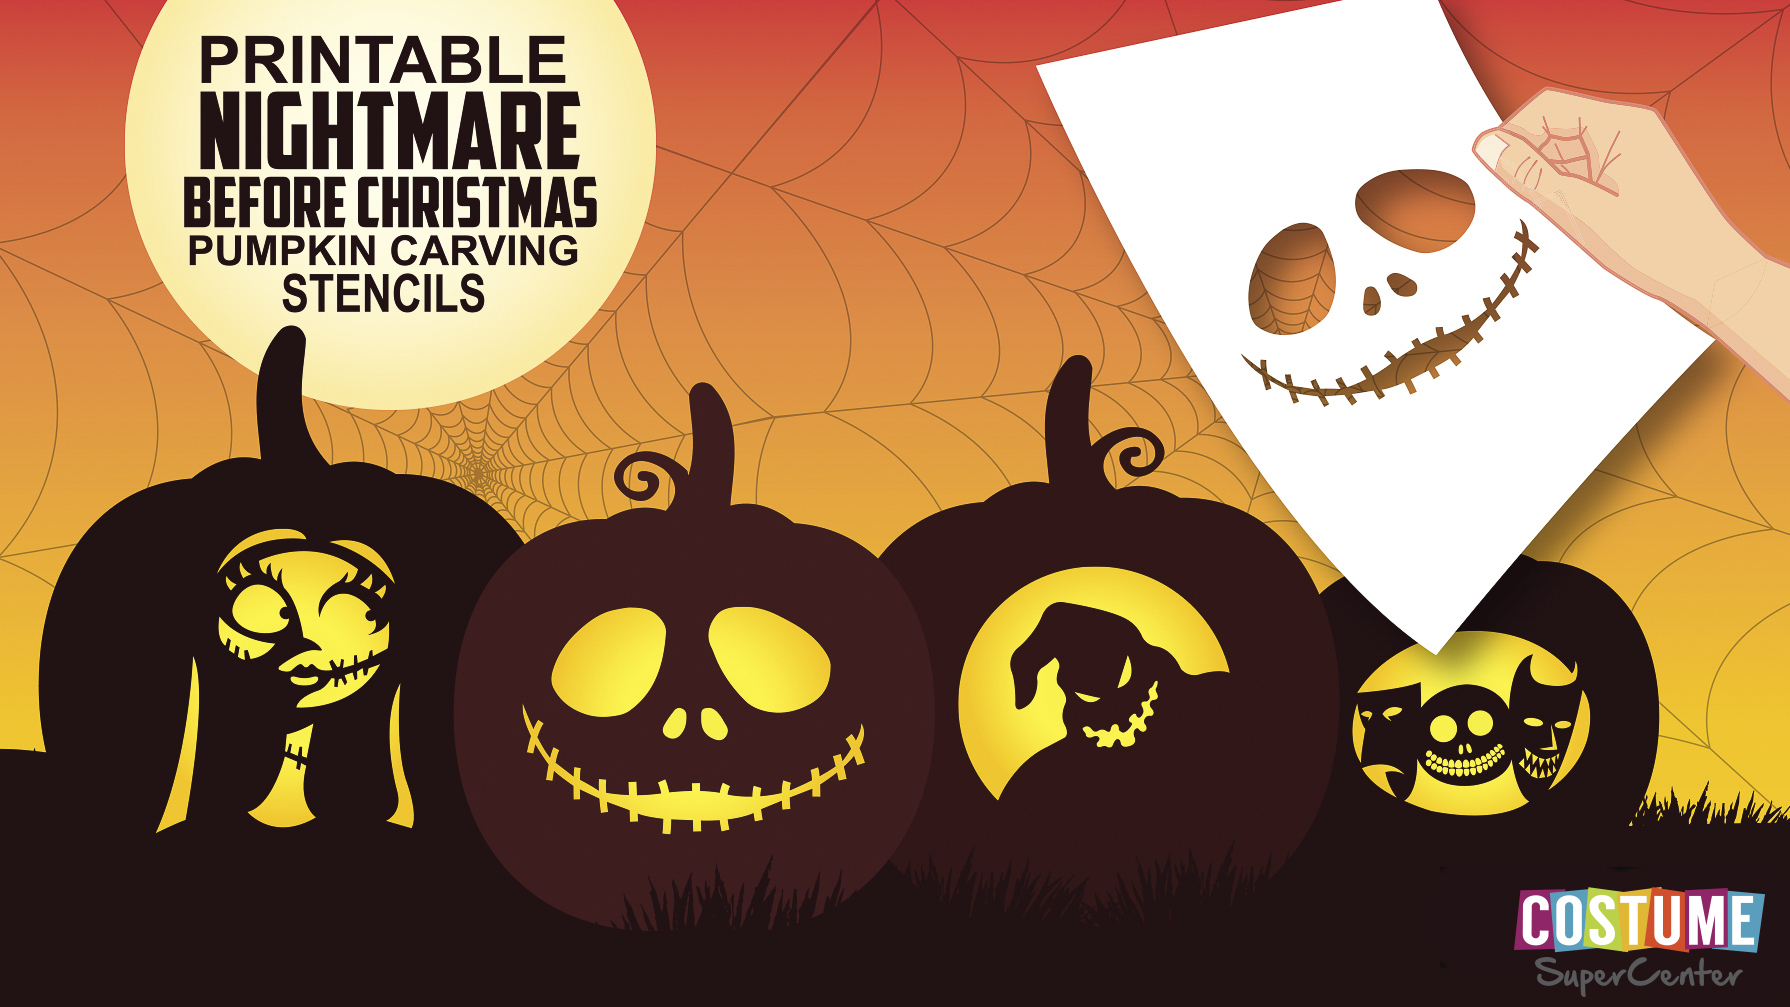 Nightmare Before Christmas Pumpkin Carving Stencils | Costume - Free Printable Pumpkin Stencils